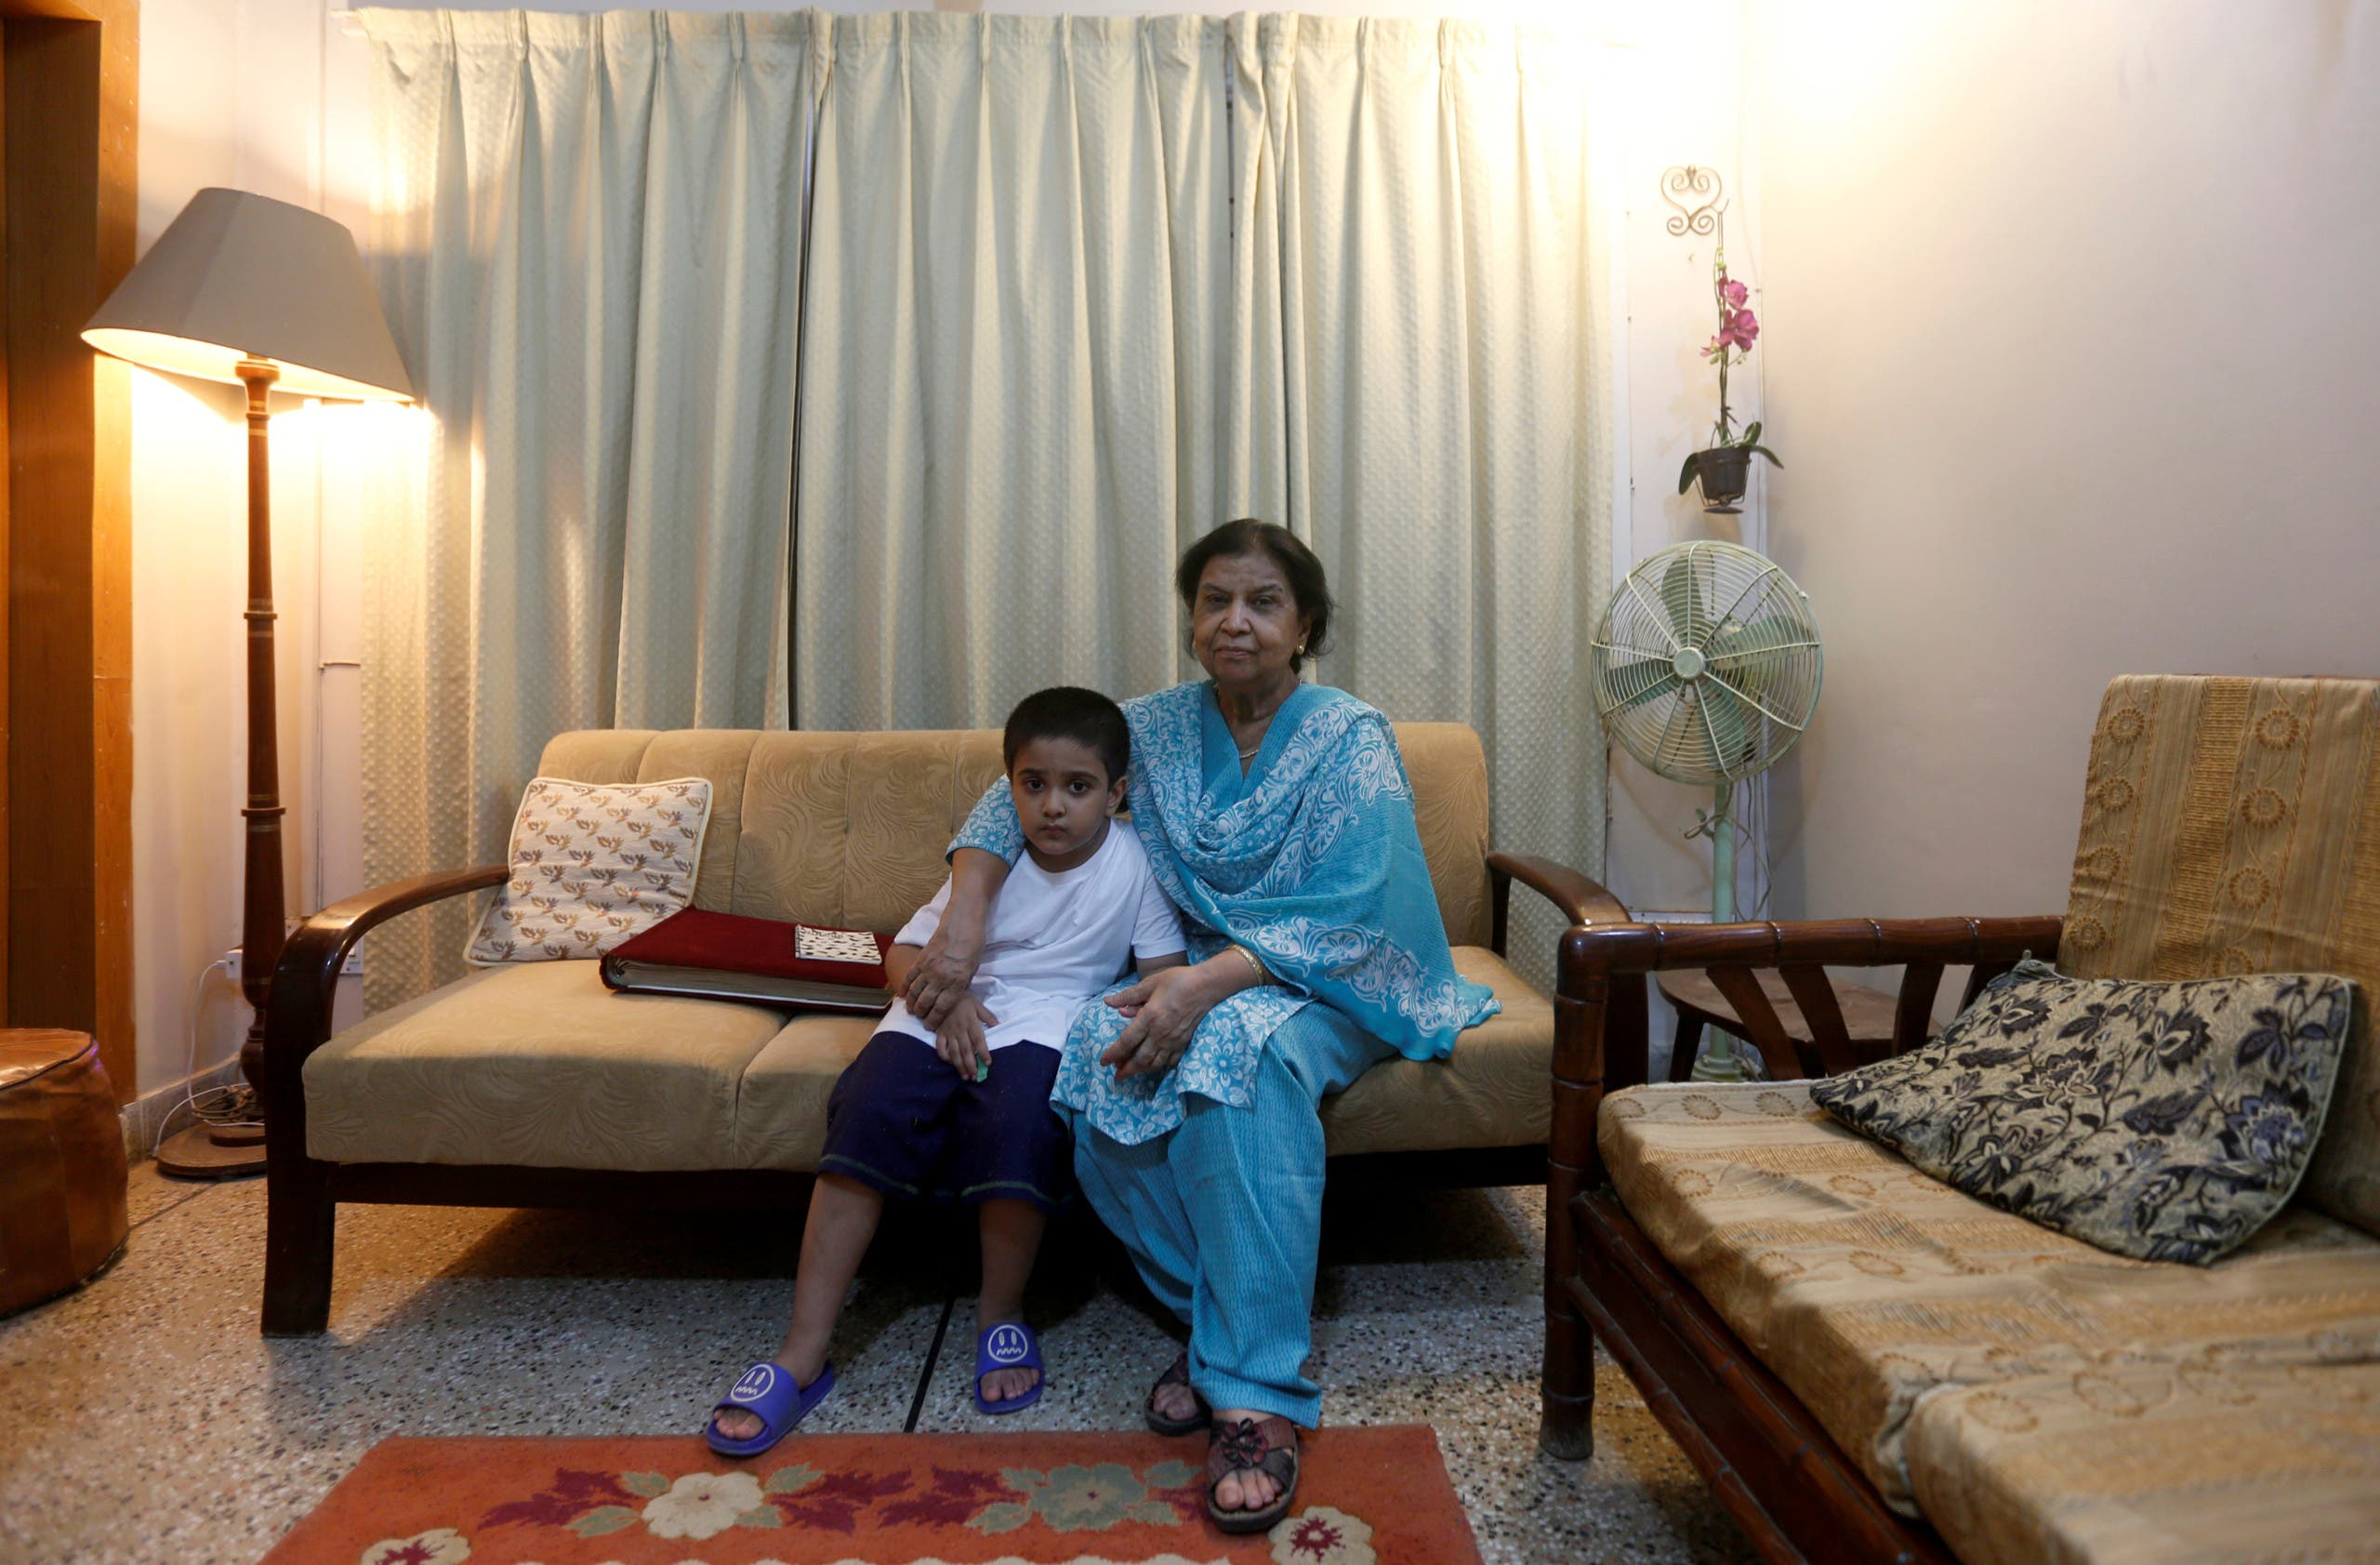 Rehana Khursheed Hashmi, 75, migrated from India with her family in 1960 and whose relatives, live in India, sits with her five year-old grandson Faraz Hashmi, at her residence in Karachi, Pakistan August 7, 2017. (Reuters)